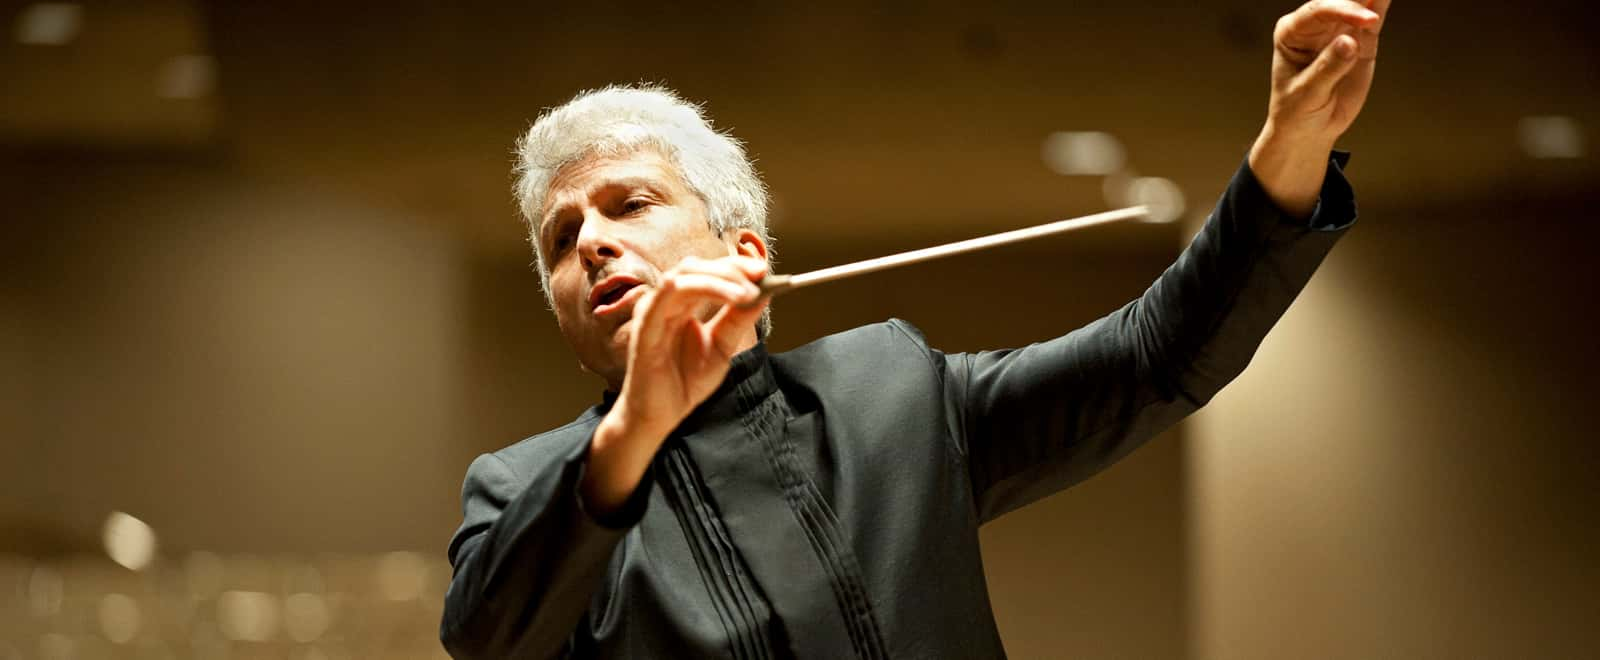 Orchestra conductor in black suit